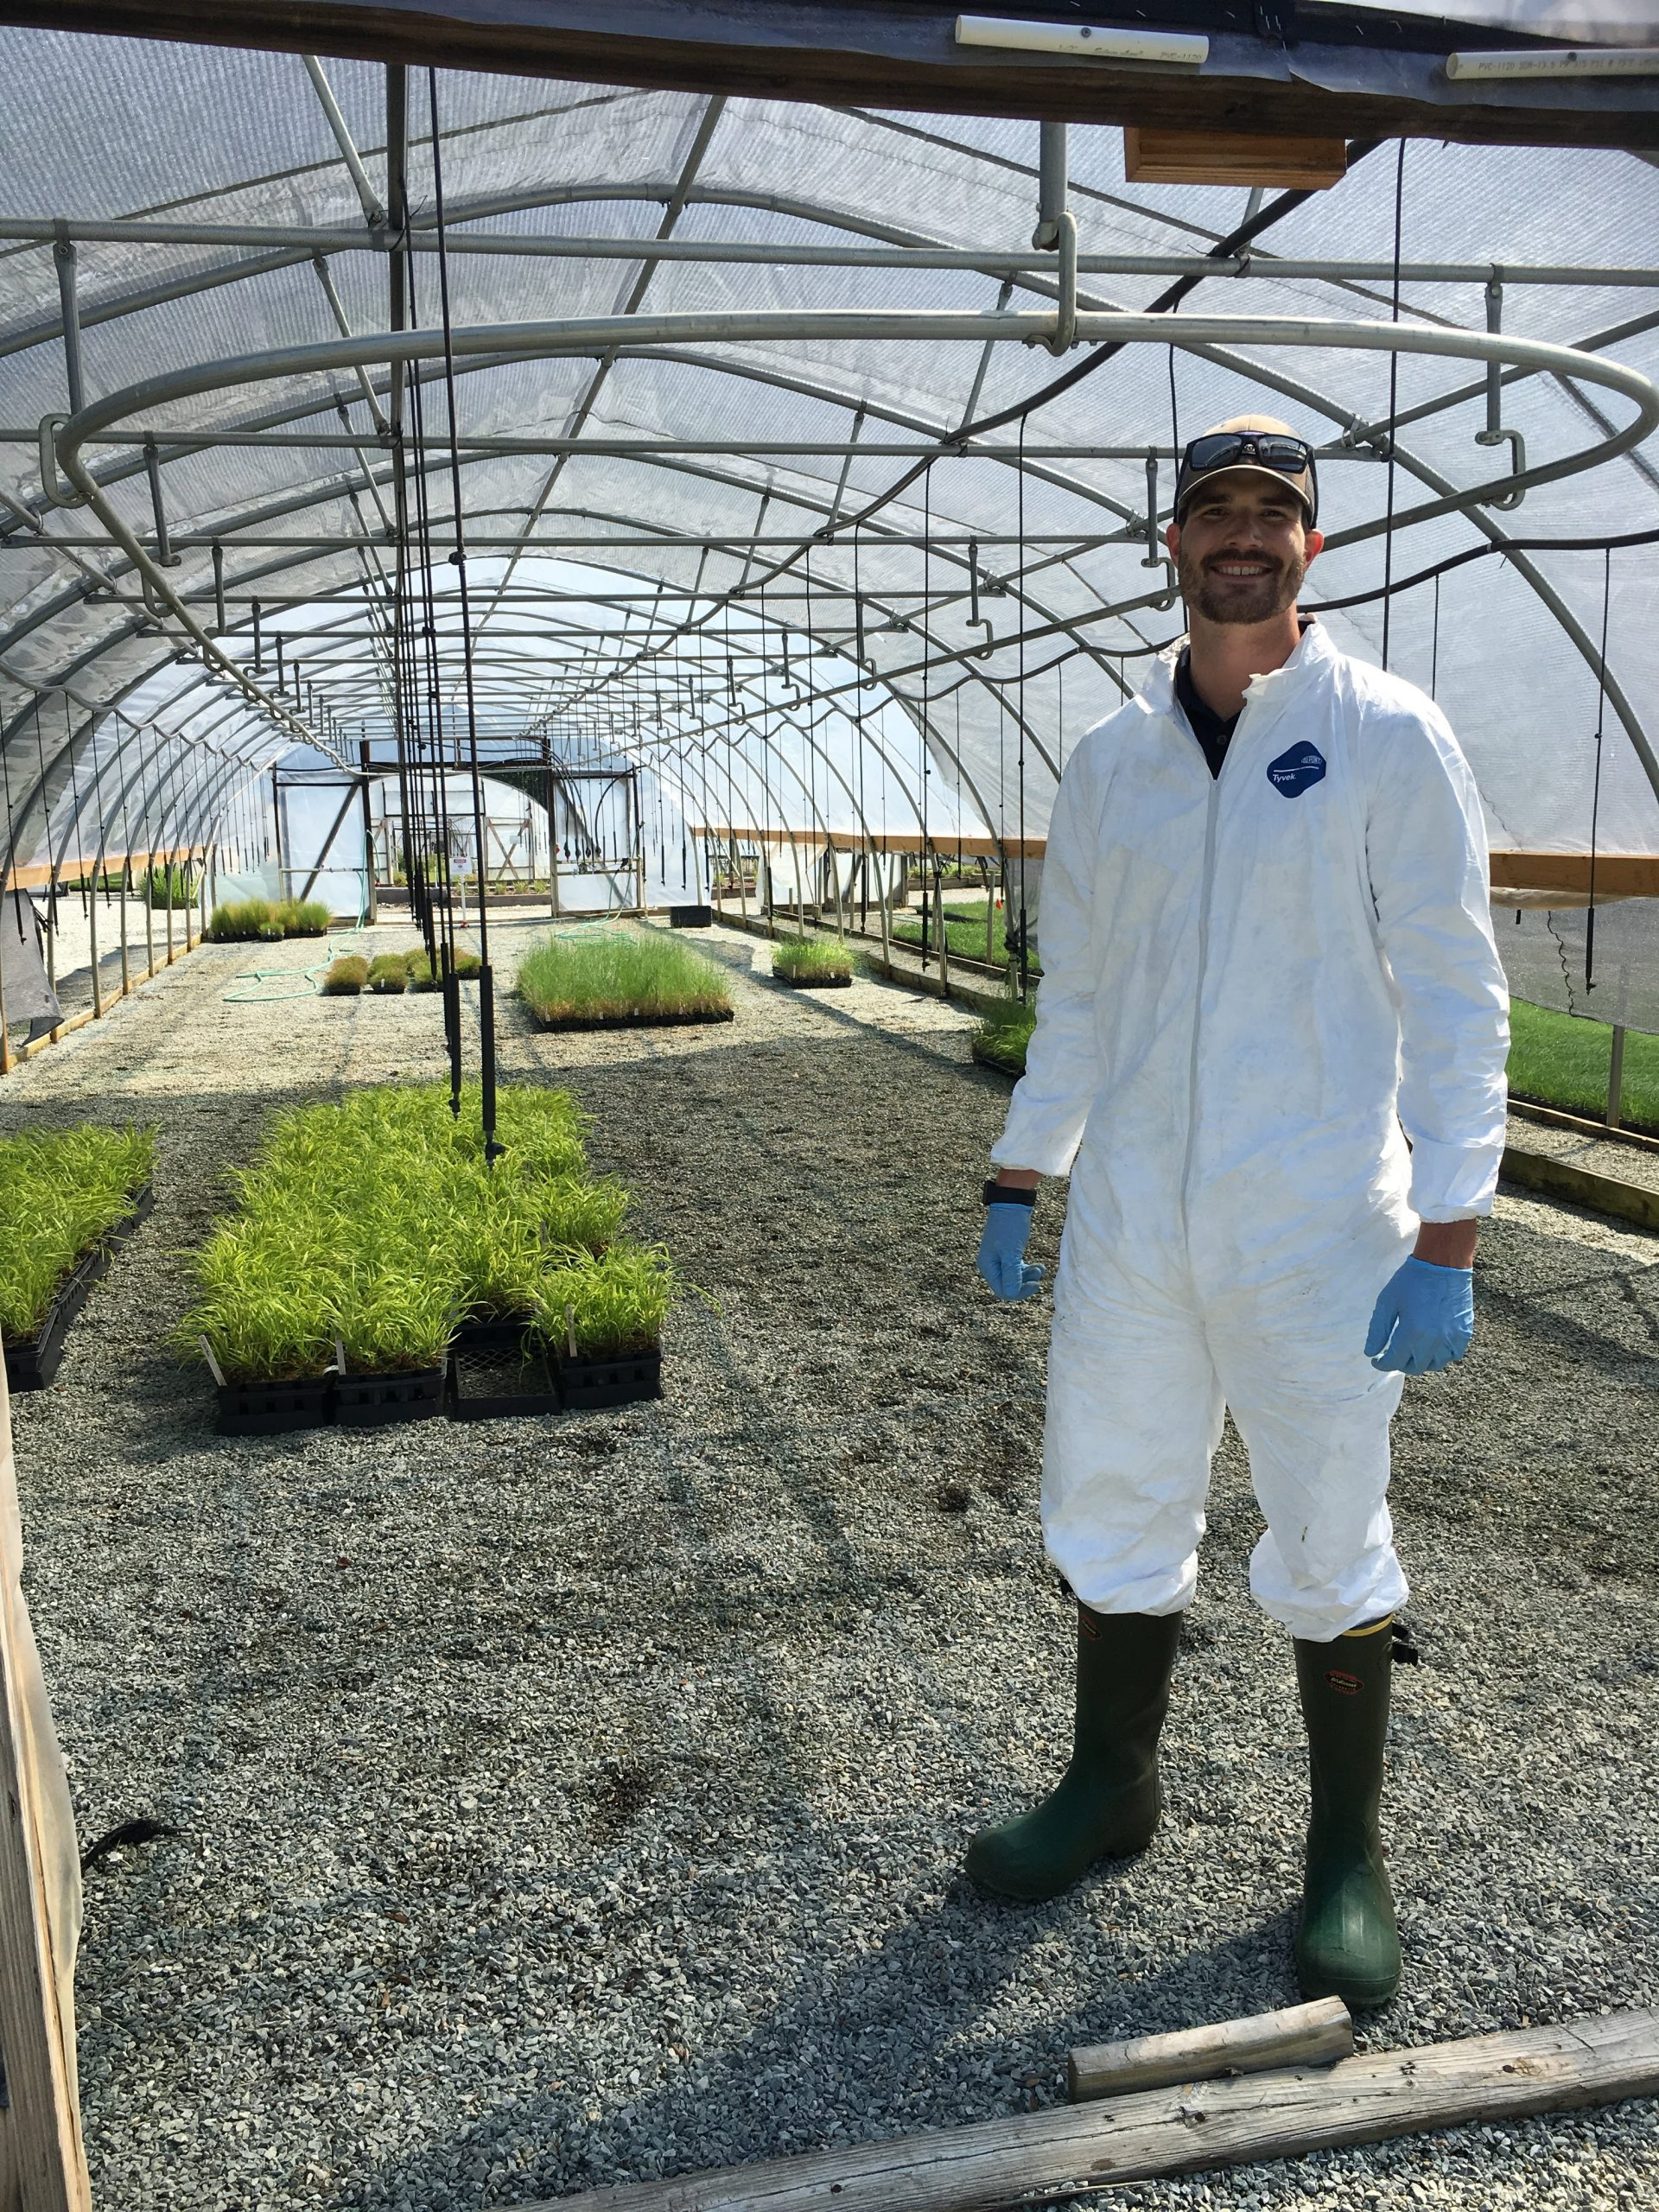 Man in lab coat standing in a turfgrass greenhouse